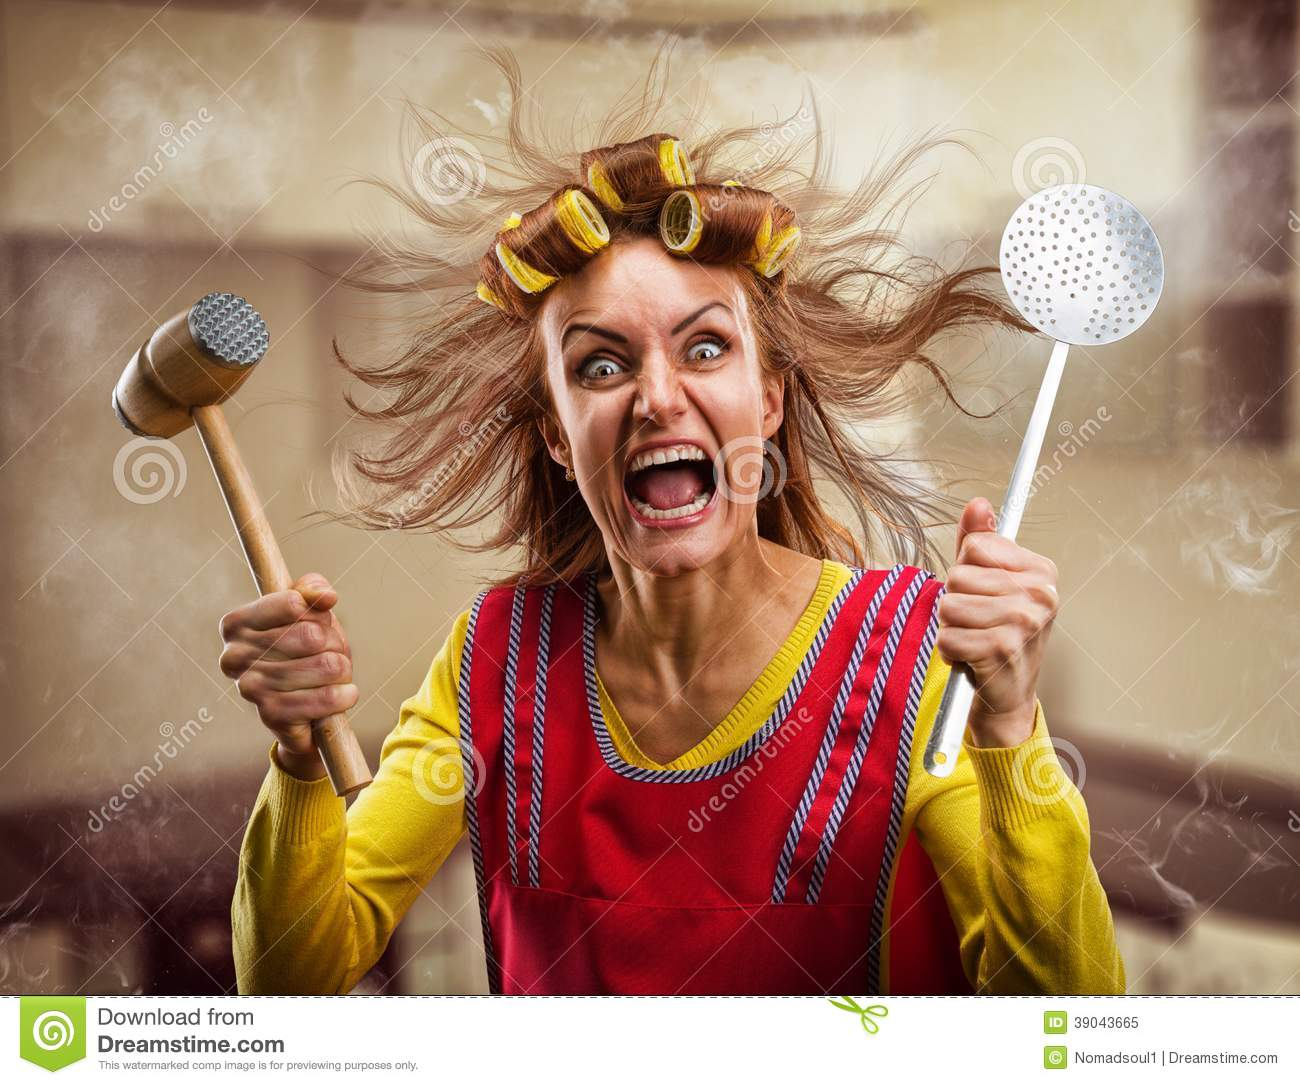 Awesome Royalty Free Stock Photo. Download Crazy Housewife With Kitchen ...